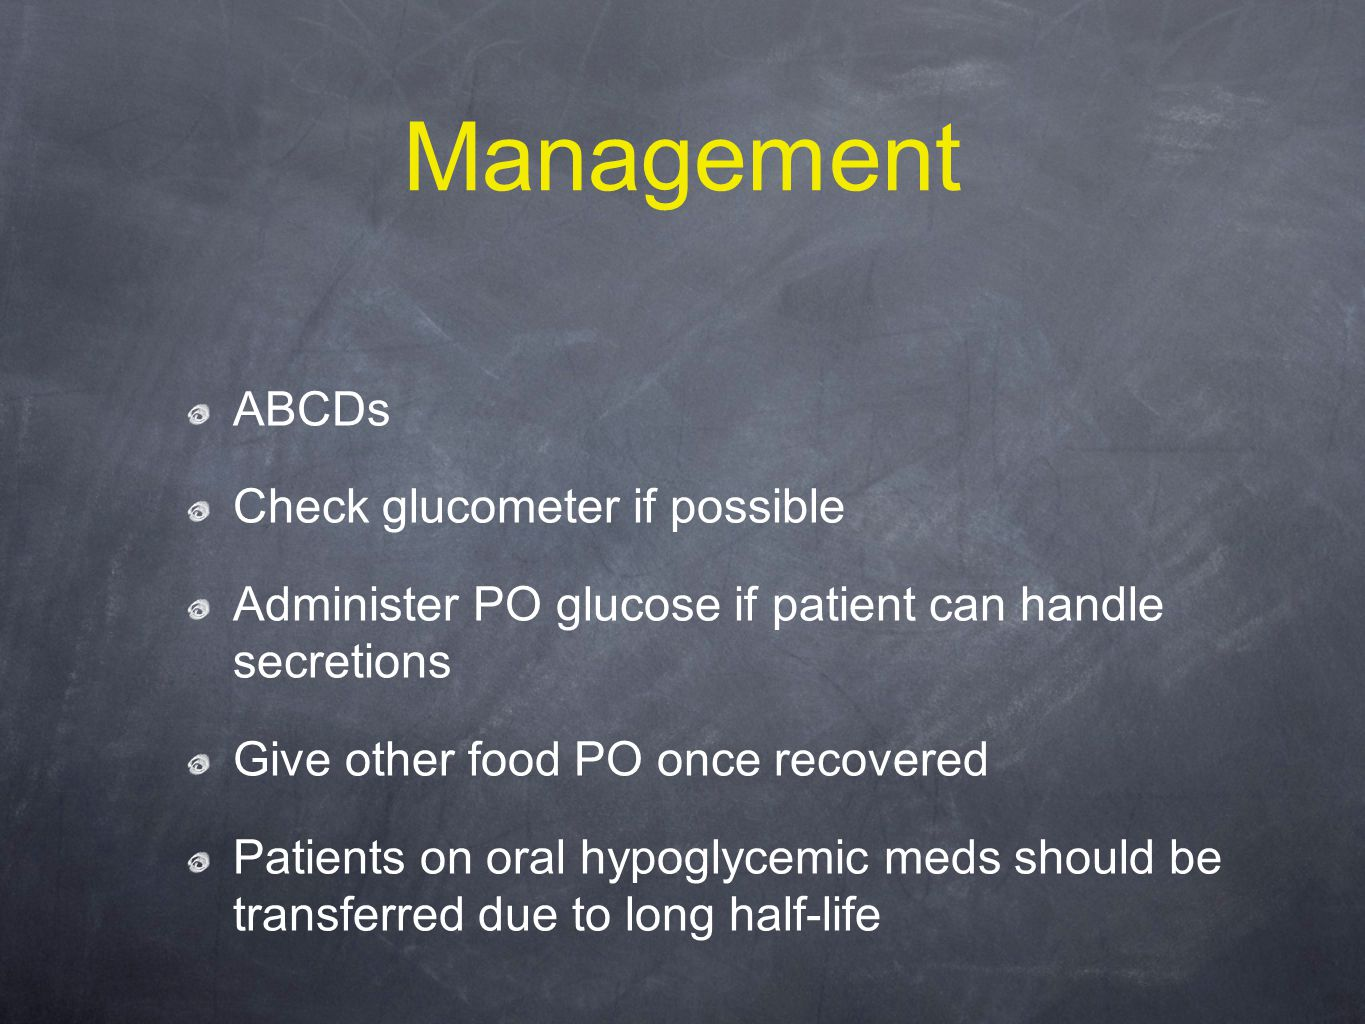 Management ABCDs Check glucometer if possible Administer PO glucose if patient can handle secretions Give other food PO once recovered Patients on oral hypoglycemic meds should be transferred due to long half-life